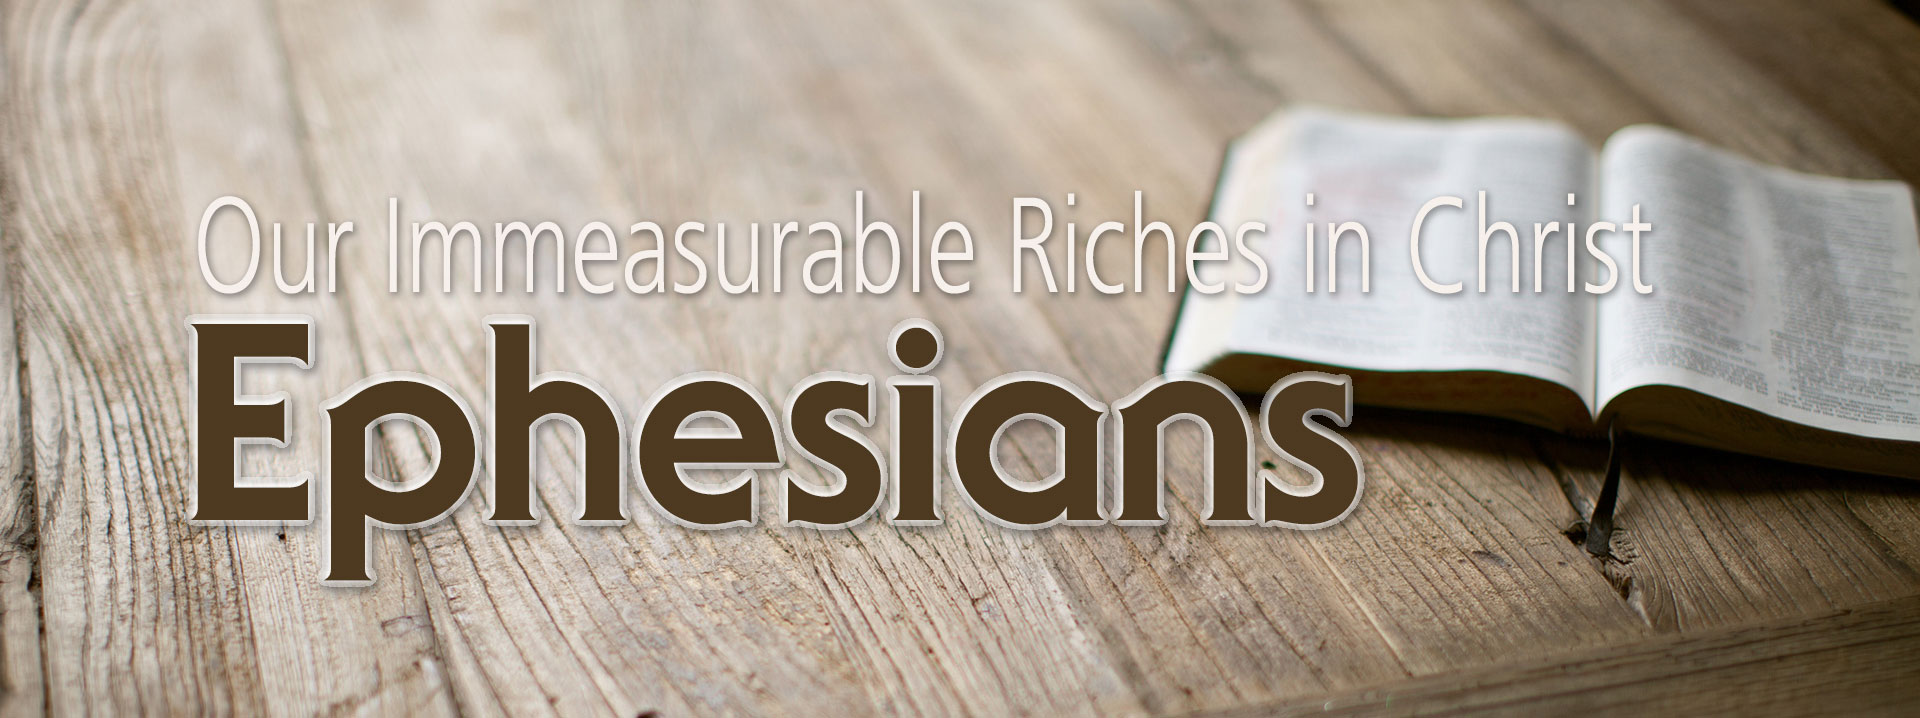 Ephesians: Our Immeasurable Riches In Christ